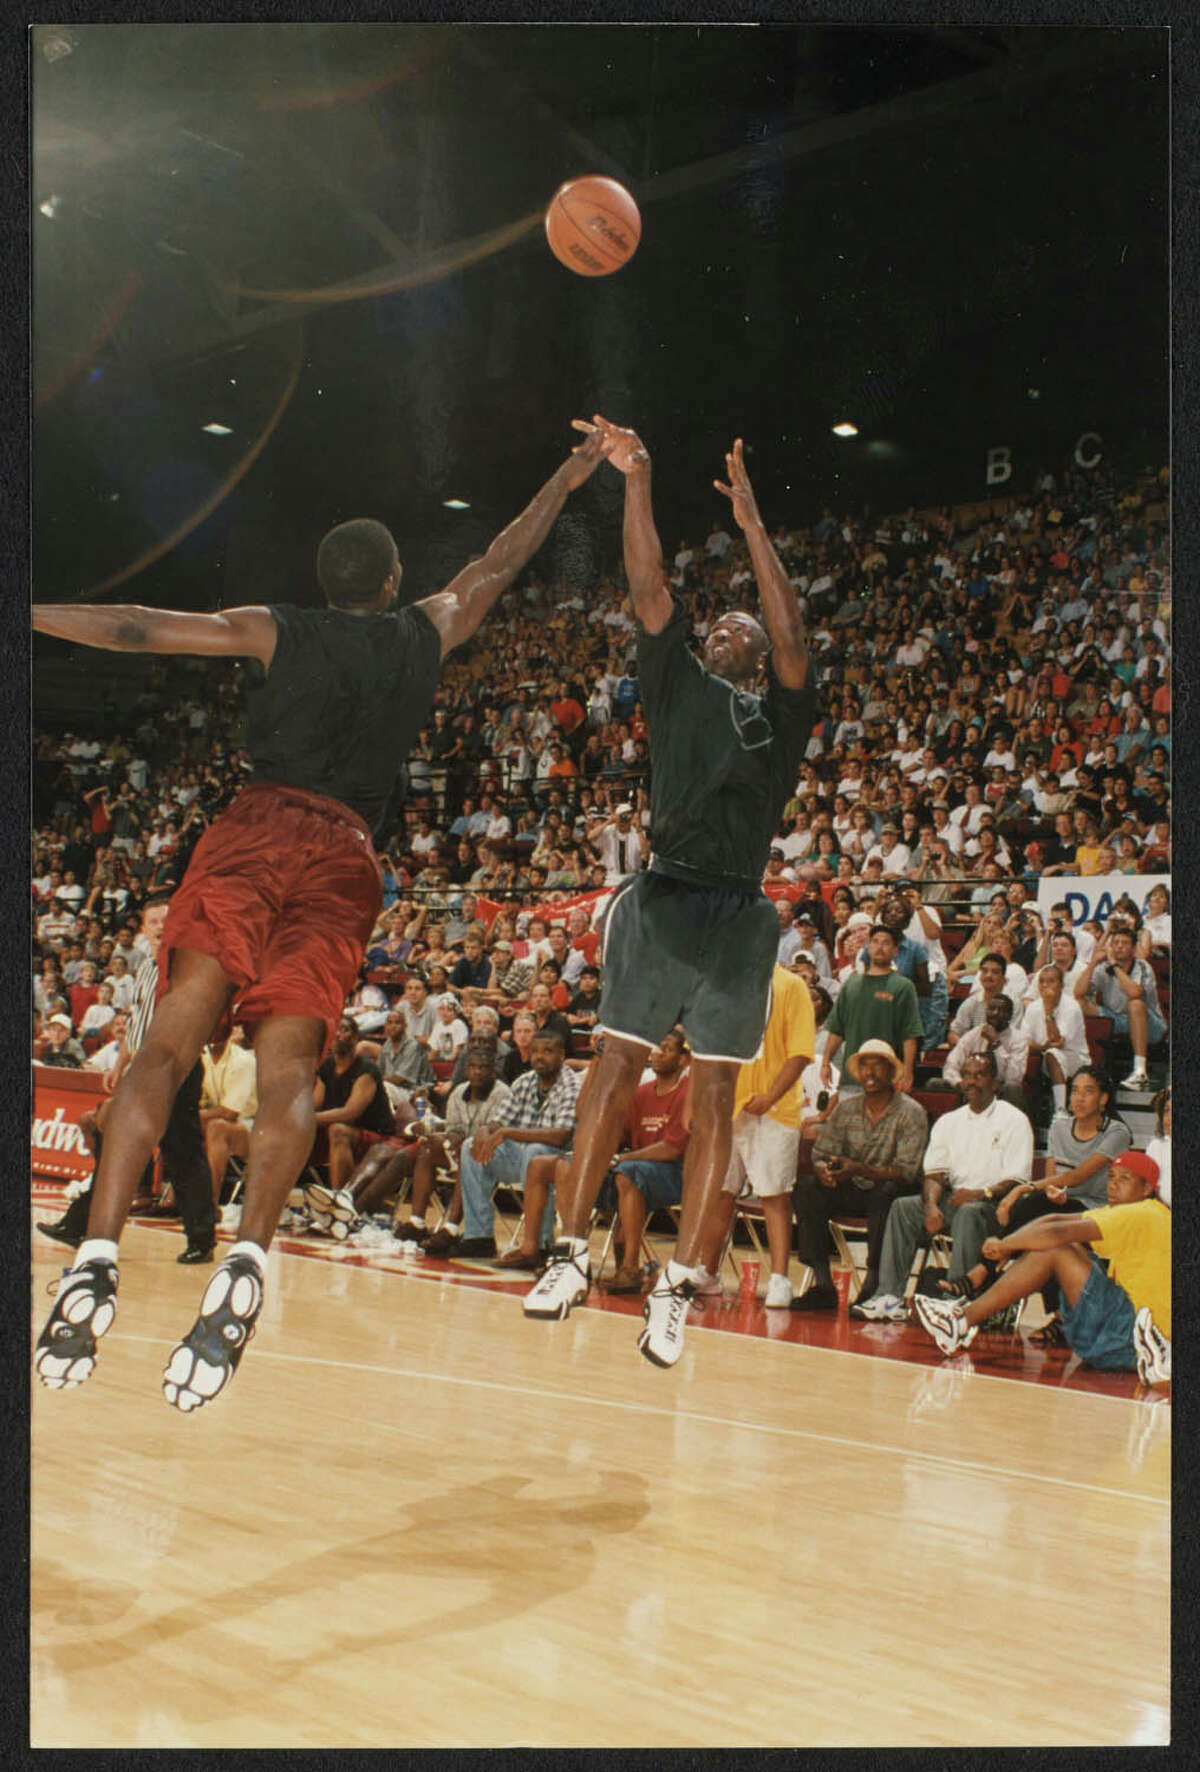 """Texas State University dug into the school's archives to share 22-year-old photos showing Jordan playing at Strahan Coliseum for a charity event. The university shared a few more photos with mySA in addition to those shots that were tweeted over the weekend. The photos show a then 35-year-old Jordan participating in the June 22, 1998, """"Let Me Play"""" camp, golf and basketball event. The series of games started in Austin, but the finale was hosted on the Texas State campus, which was named Southwest Texas State University at the time. About 7,000 people showed up to watch Jordan play, according to the 1999 Pedagog, the school's yearbook."""